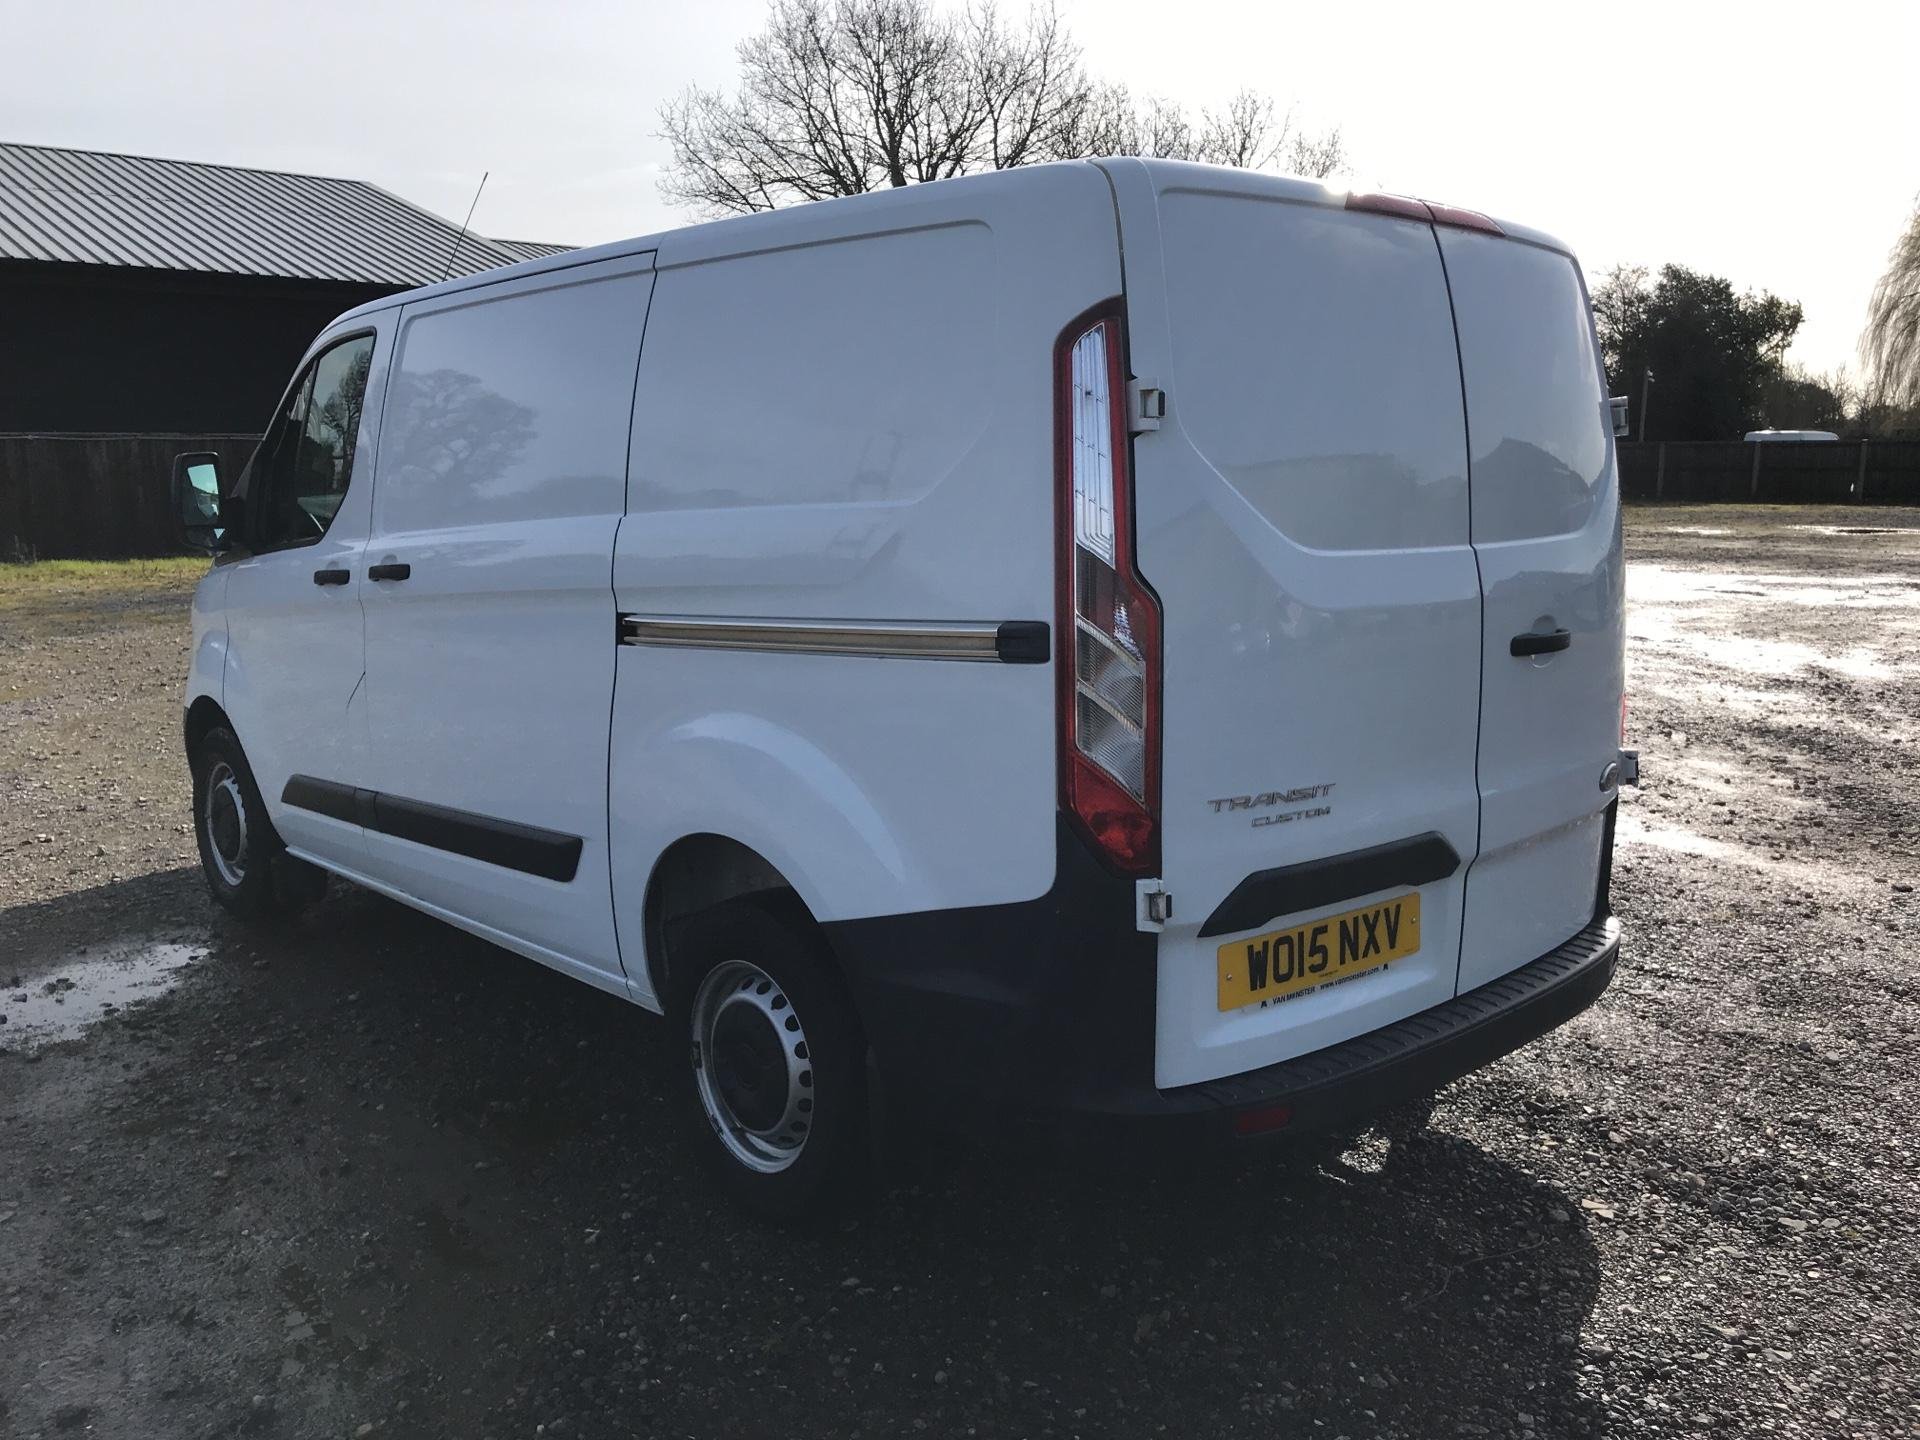 2015 Ford Transit Custom 290 L1 DIESEL FWD 2.2 TDCI 100PS LOW ROOF VAN EURO 5 (WO15NXV) Thumbnail 5